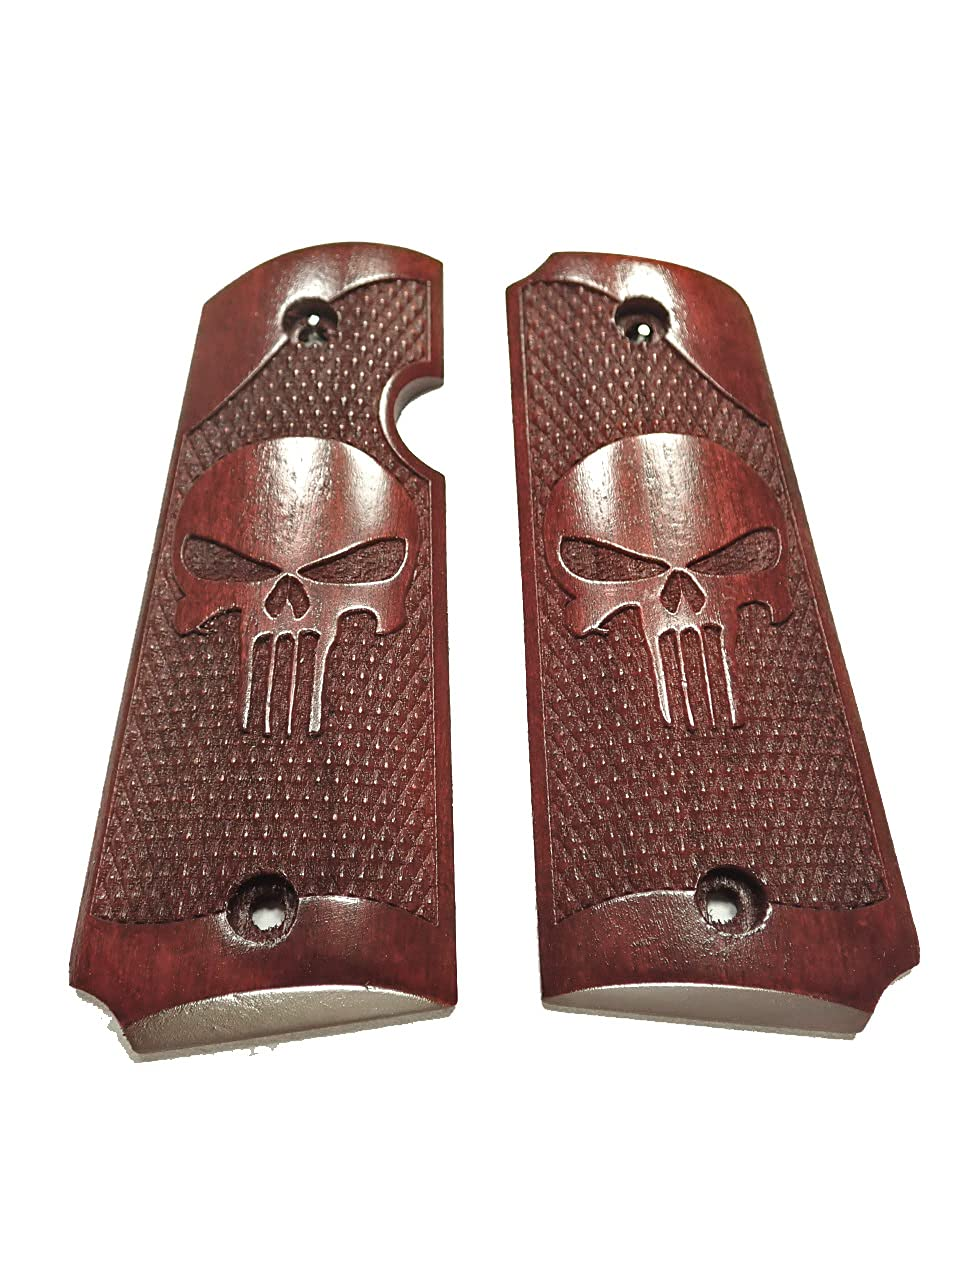 Punisher #2 Rosewood Price reduction Rock Island Grips 1911 Texture Inventory cleanup selling sale 380 Engraved